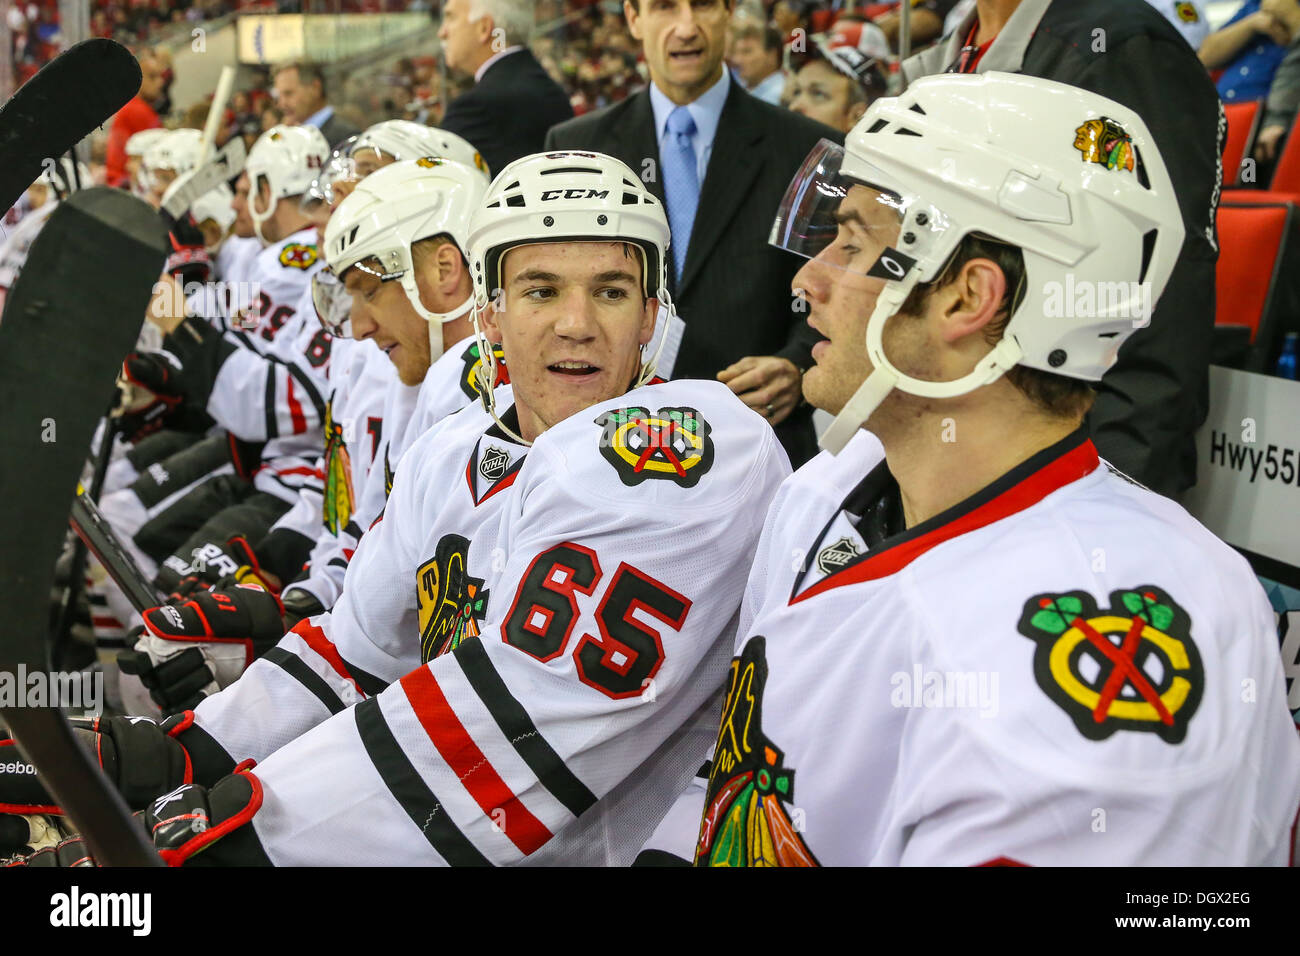 Chicago Blackhawk Andrew Shaw during an NHL hockey game during the 2013-2014 season - Stock Image